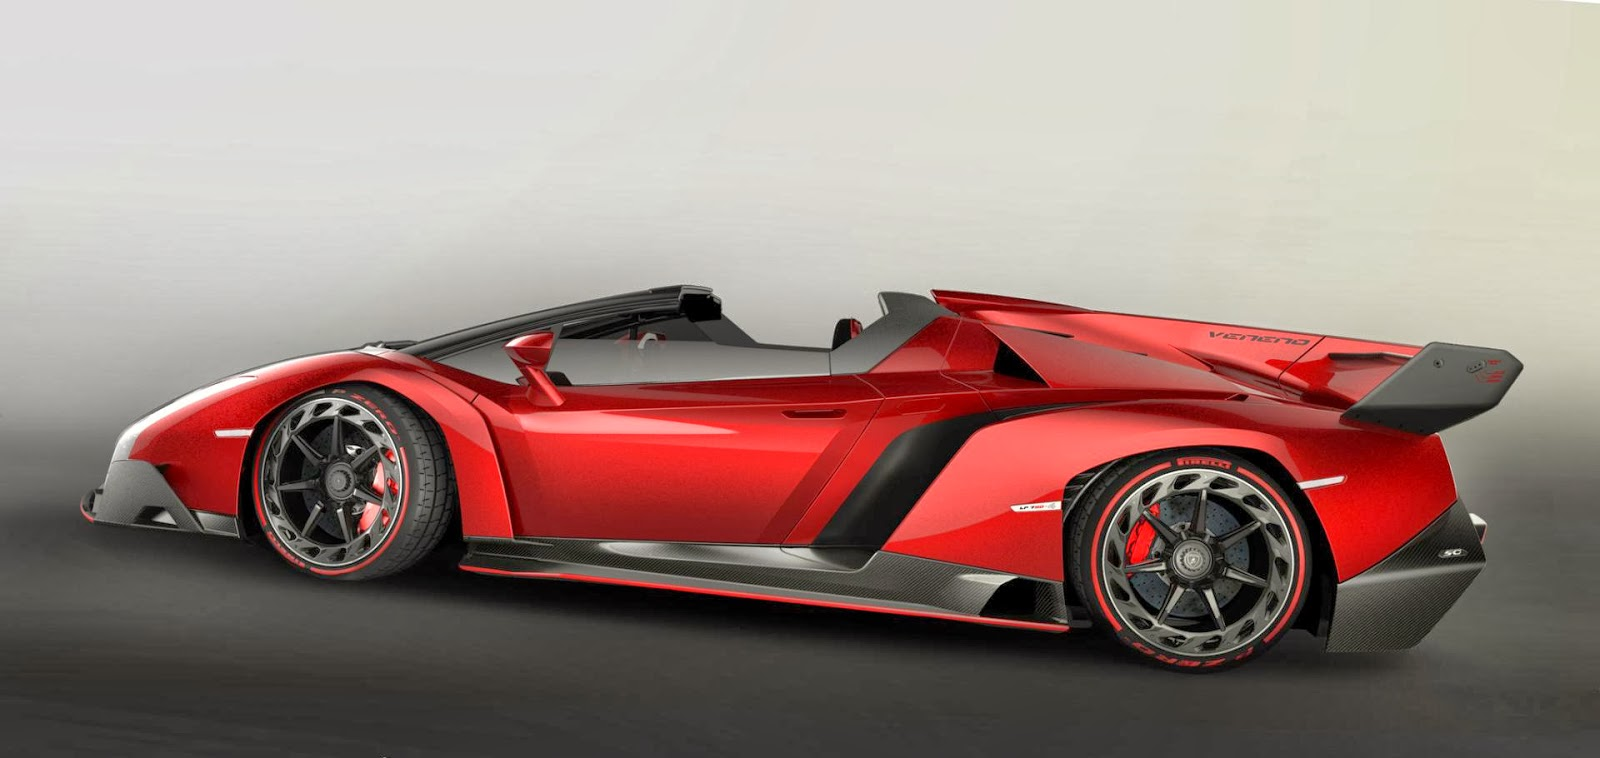 Lamborghini Veneno Roadster 2013 Hottest Car Wallpapers